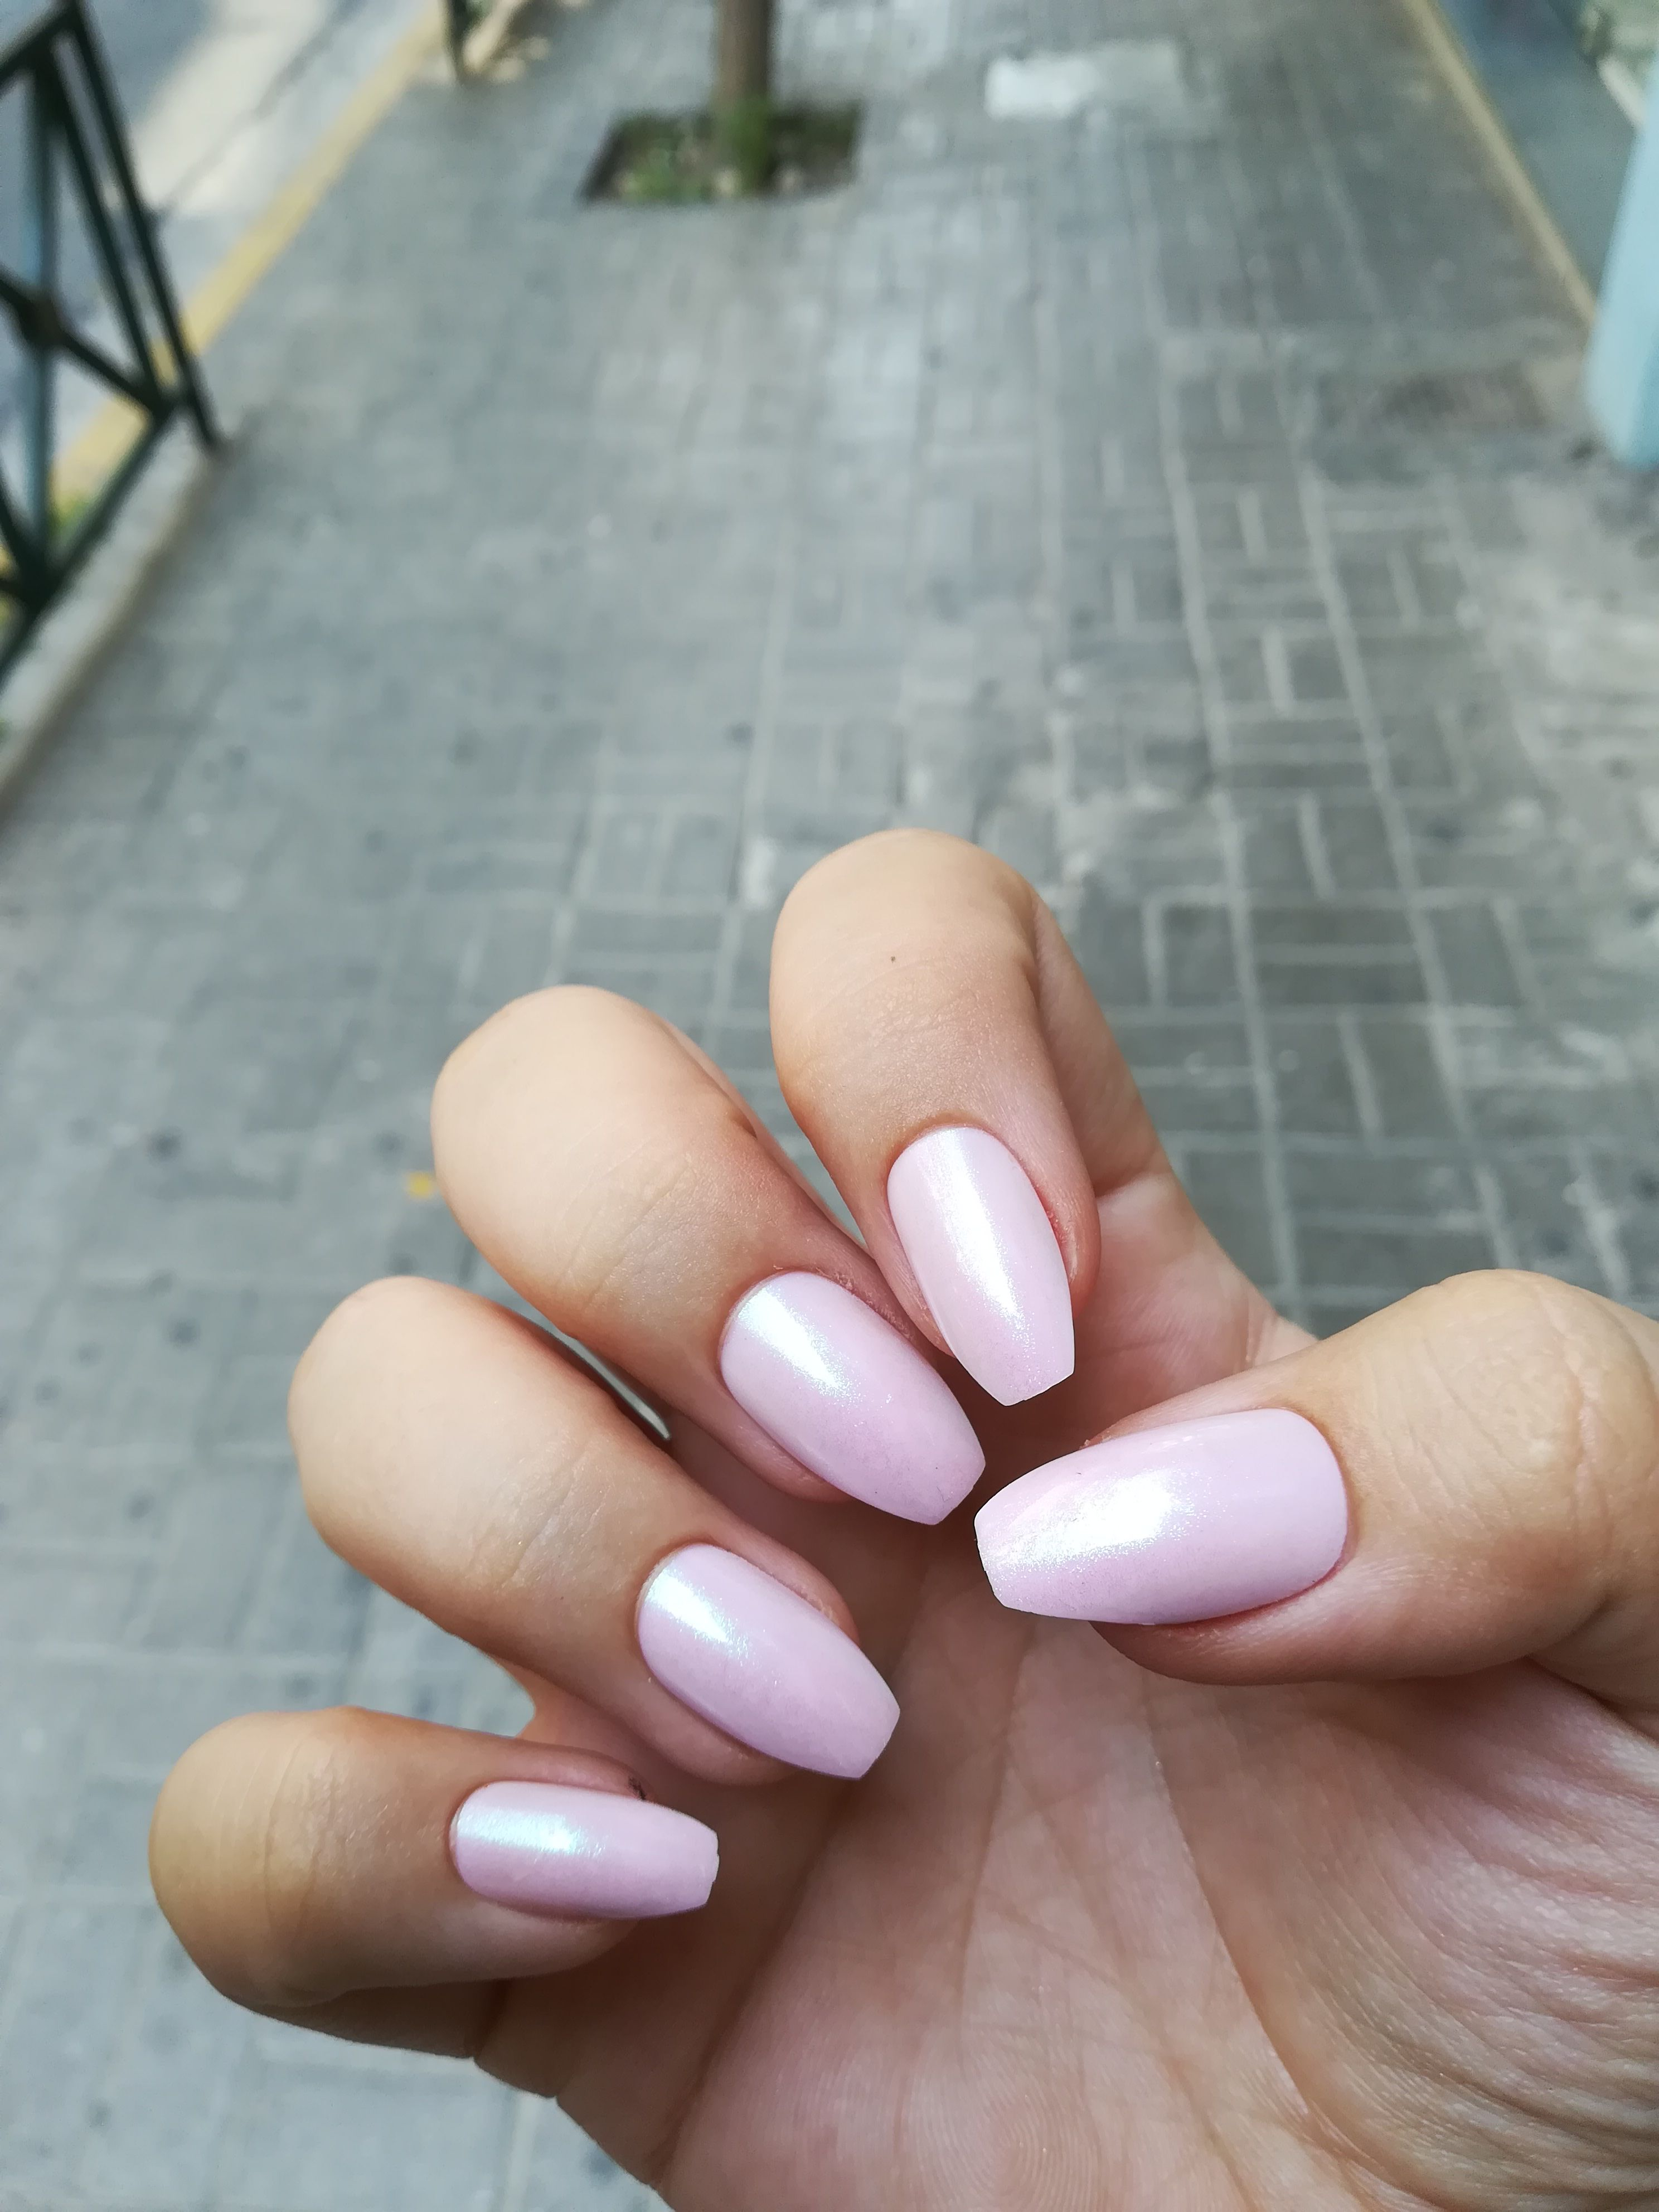 25 Best Valentine's Day Nails   Hot Nail Art Design Ideas for ...